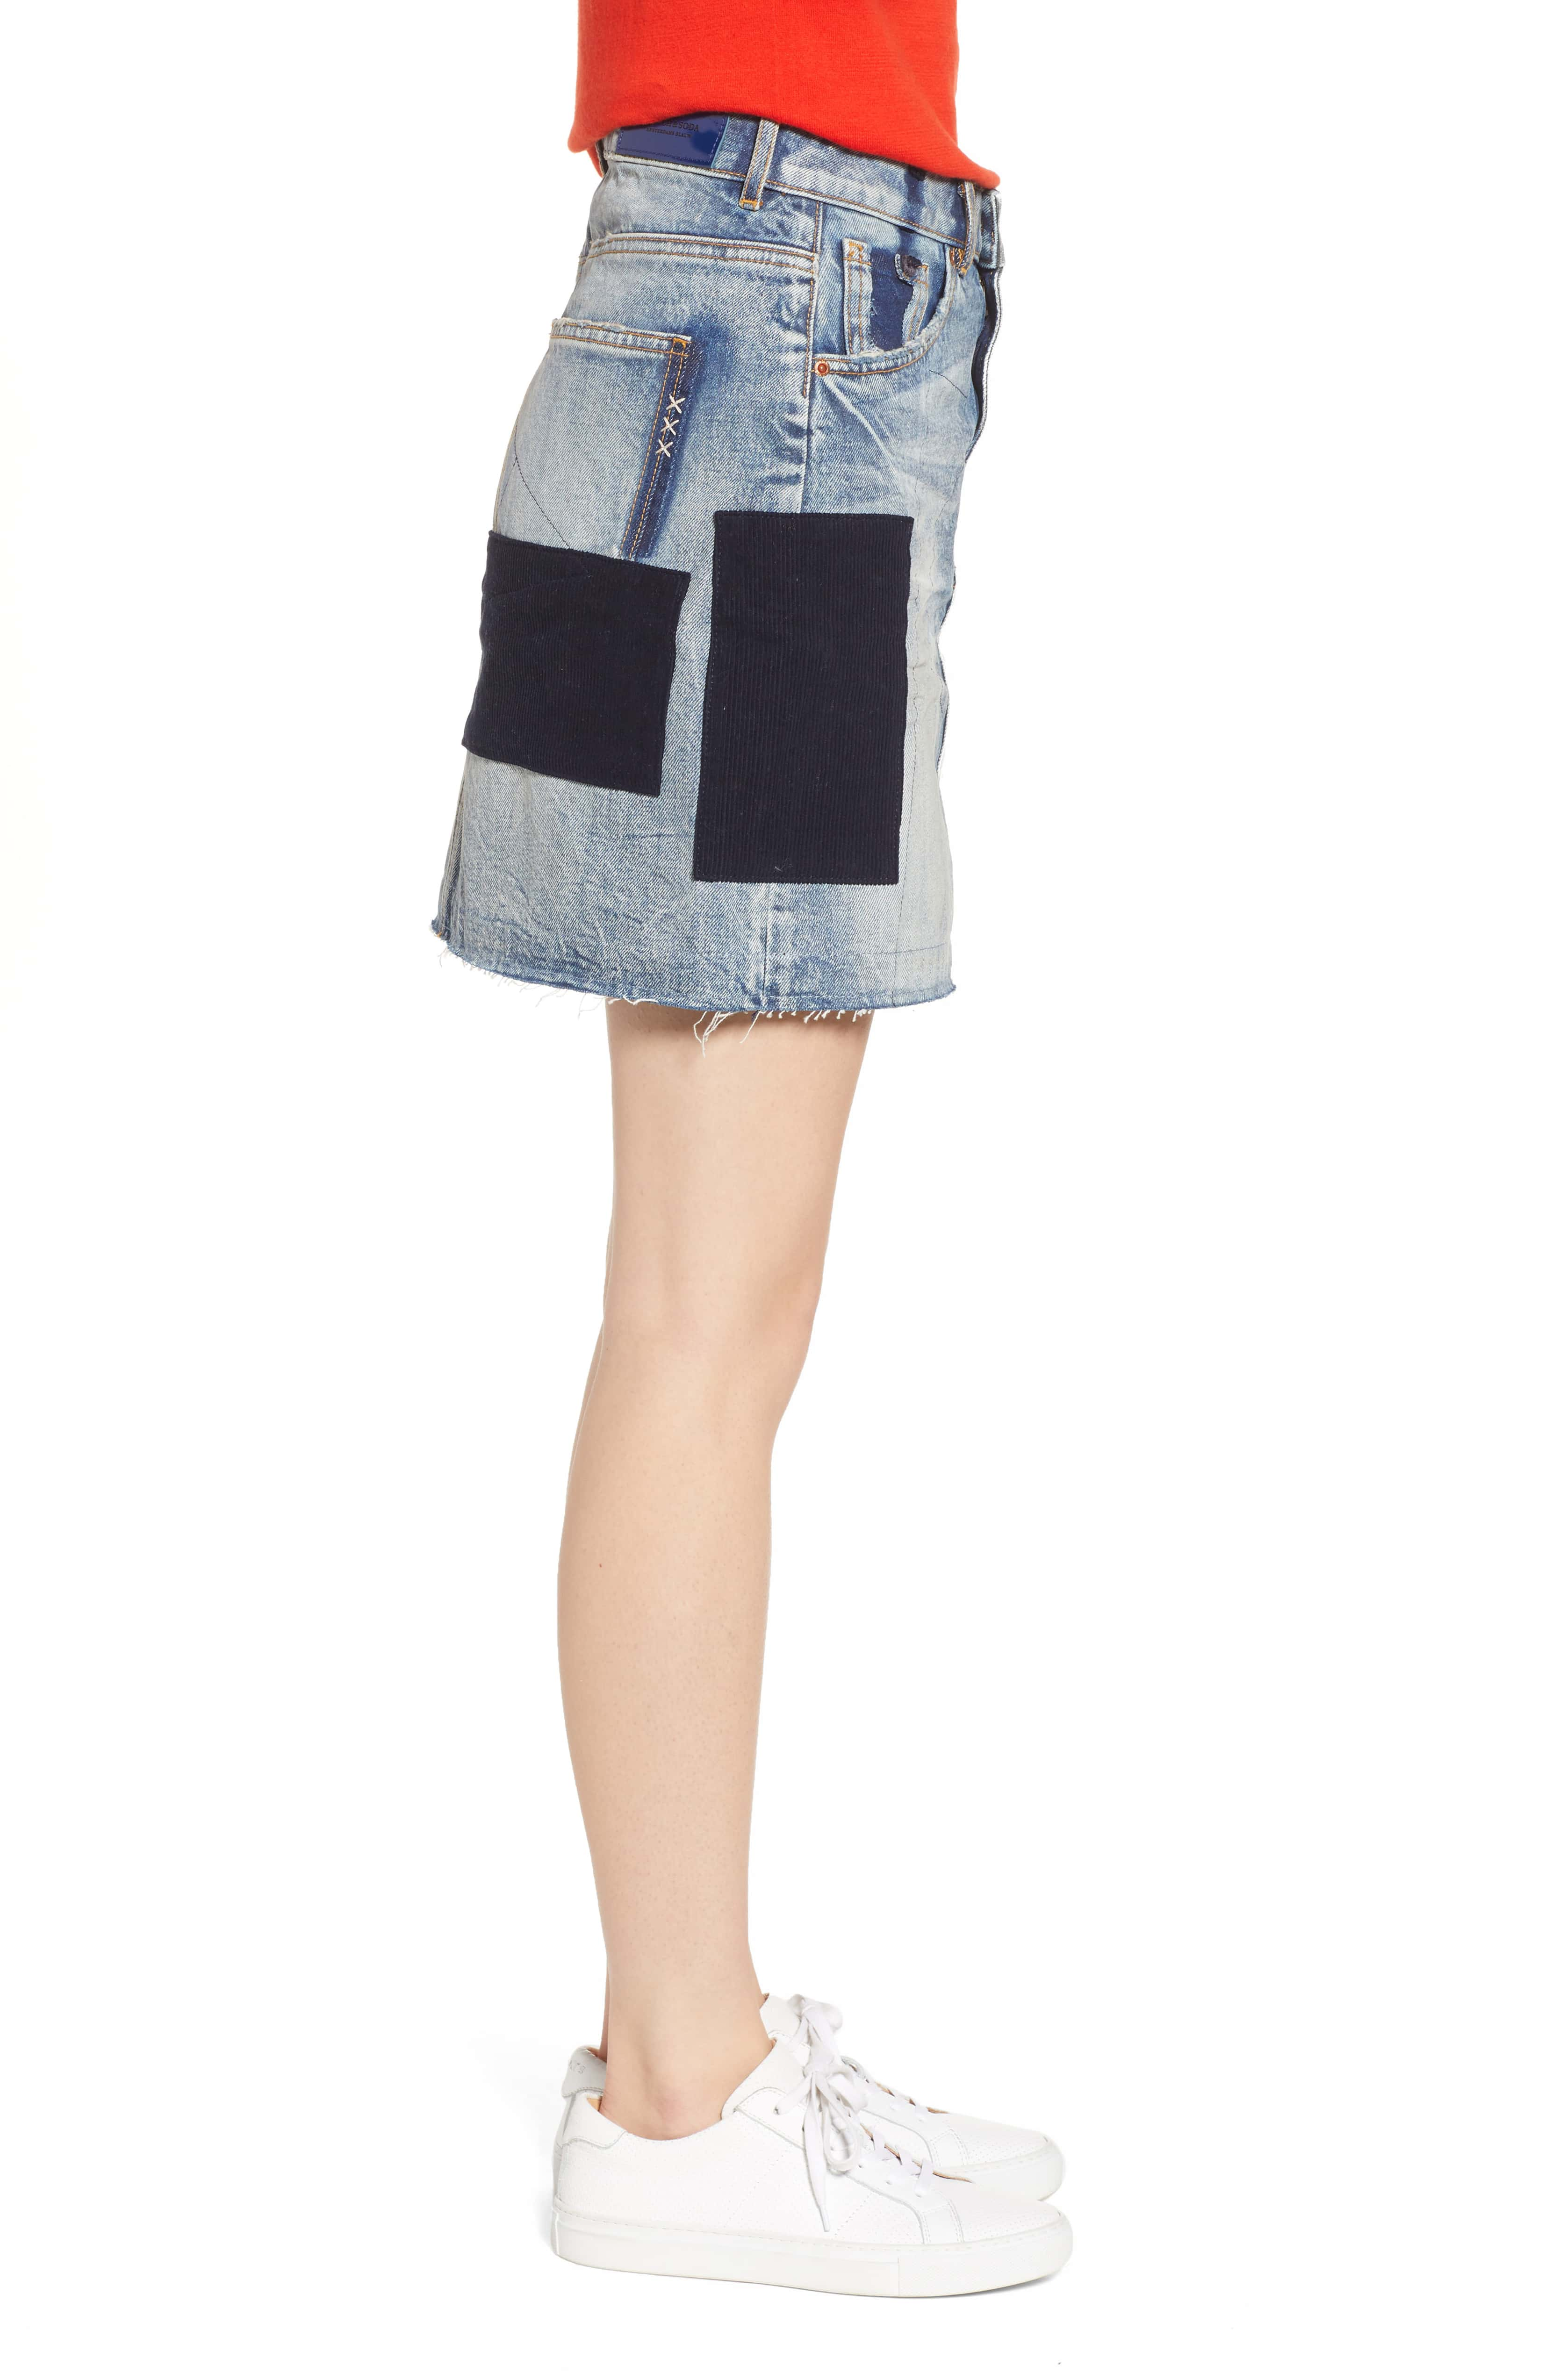 Denim Skirt with Freak Applique